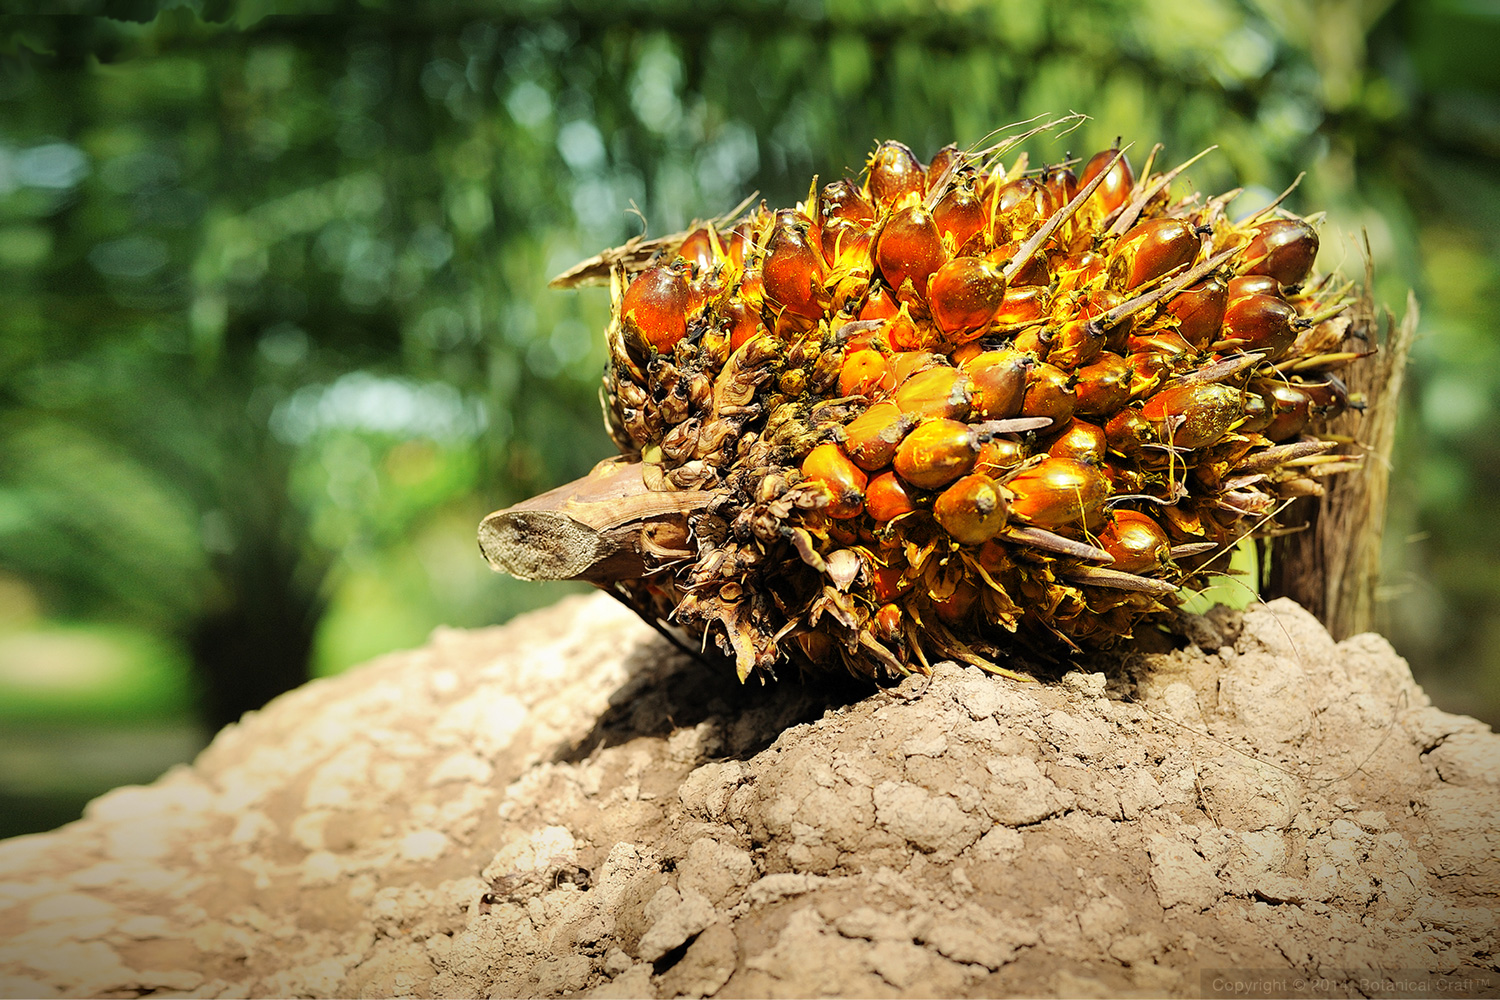 Cluster of fresh palm fruit